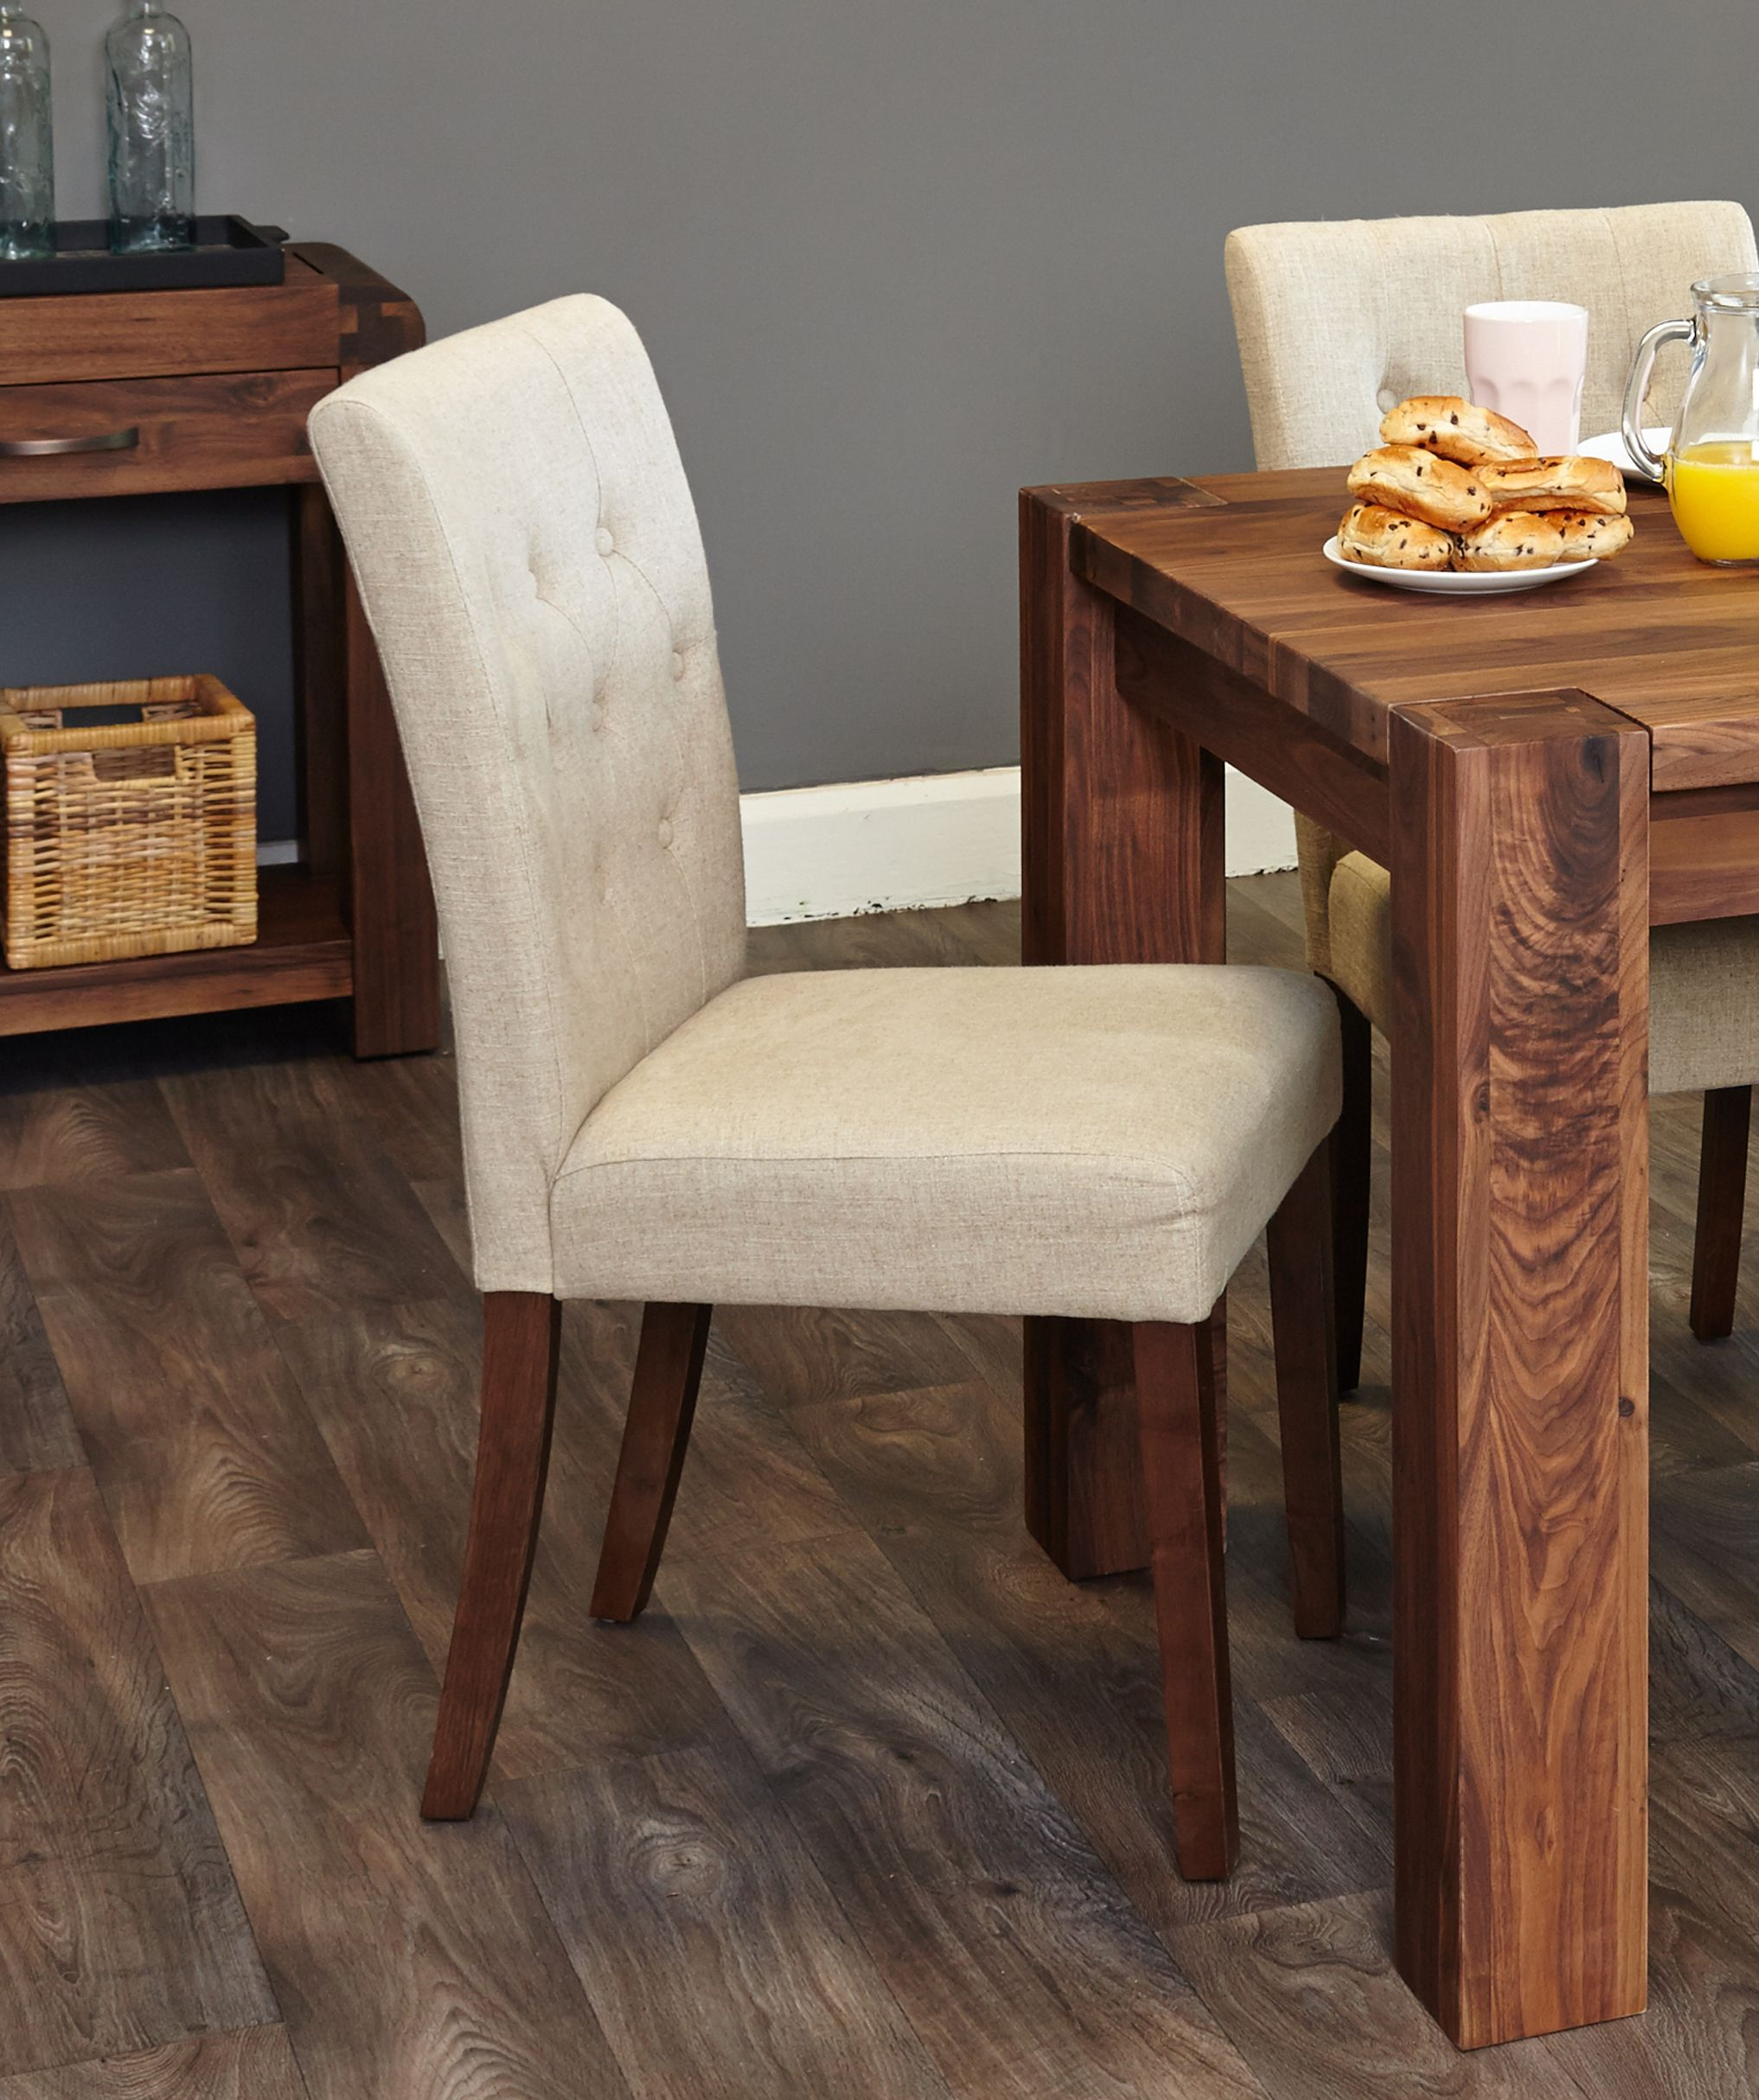 A Set Of Two Elegant Upholstered Dining Chairs In Biscuit Shade Constructed  Using A Solid Hardwood Frame And Walnut Legs Upholstered In A Luxurious, ...